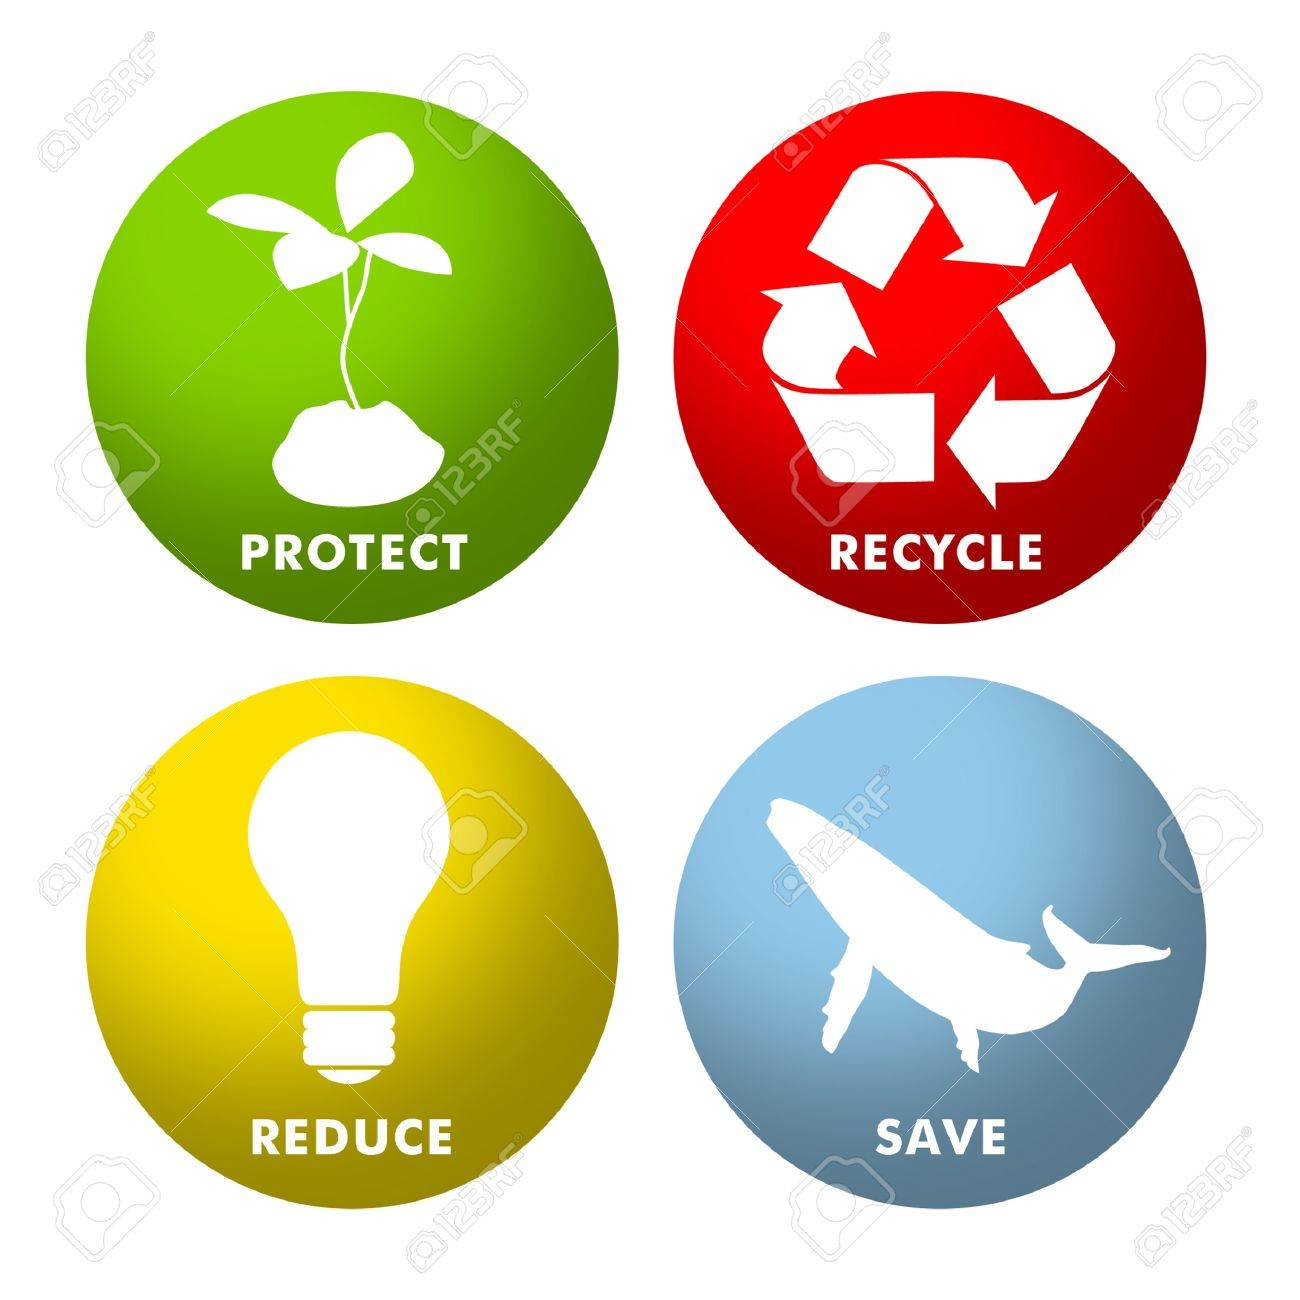 Environmental icons for Protect, Recycle, Reduce and Save. - 8808429